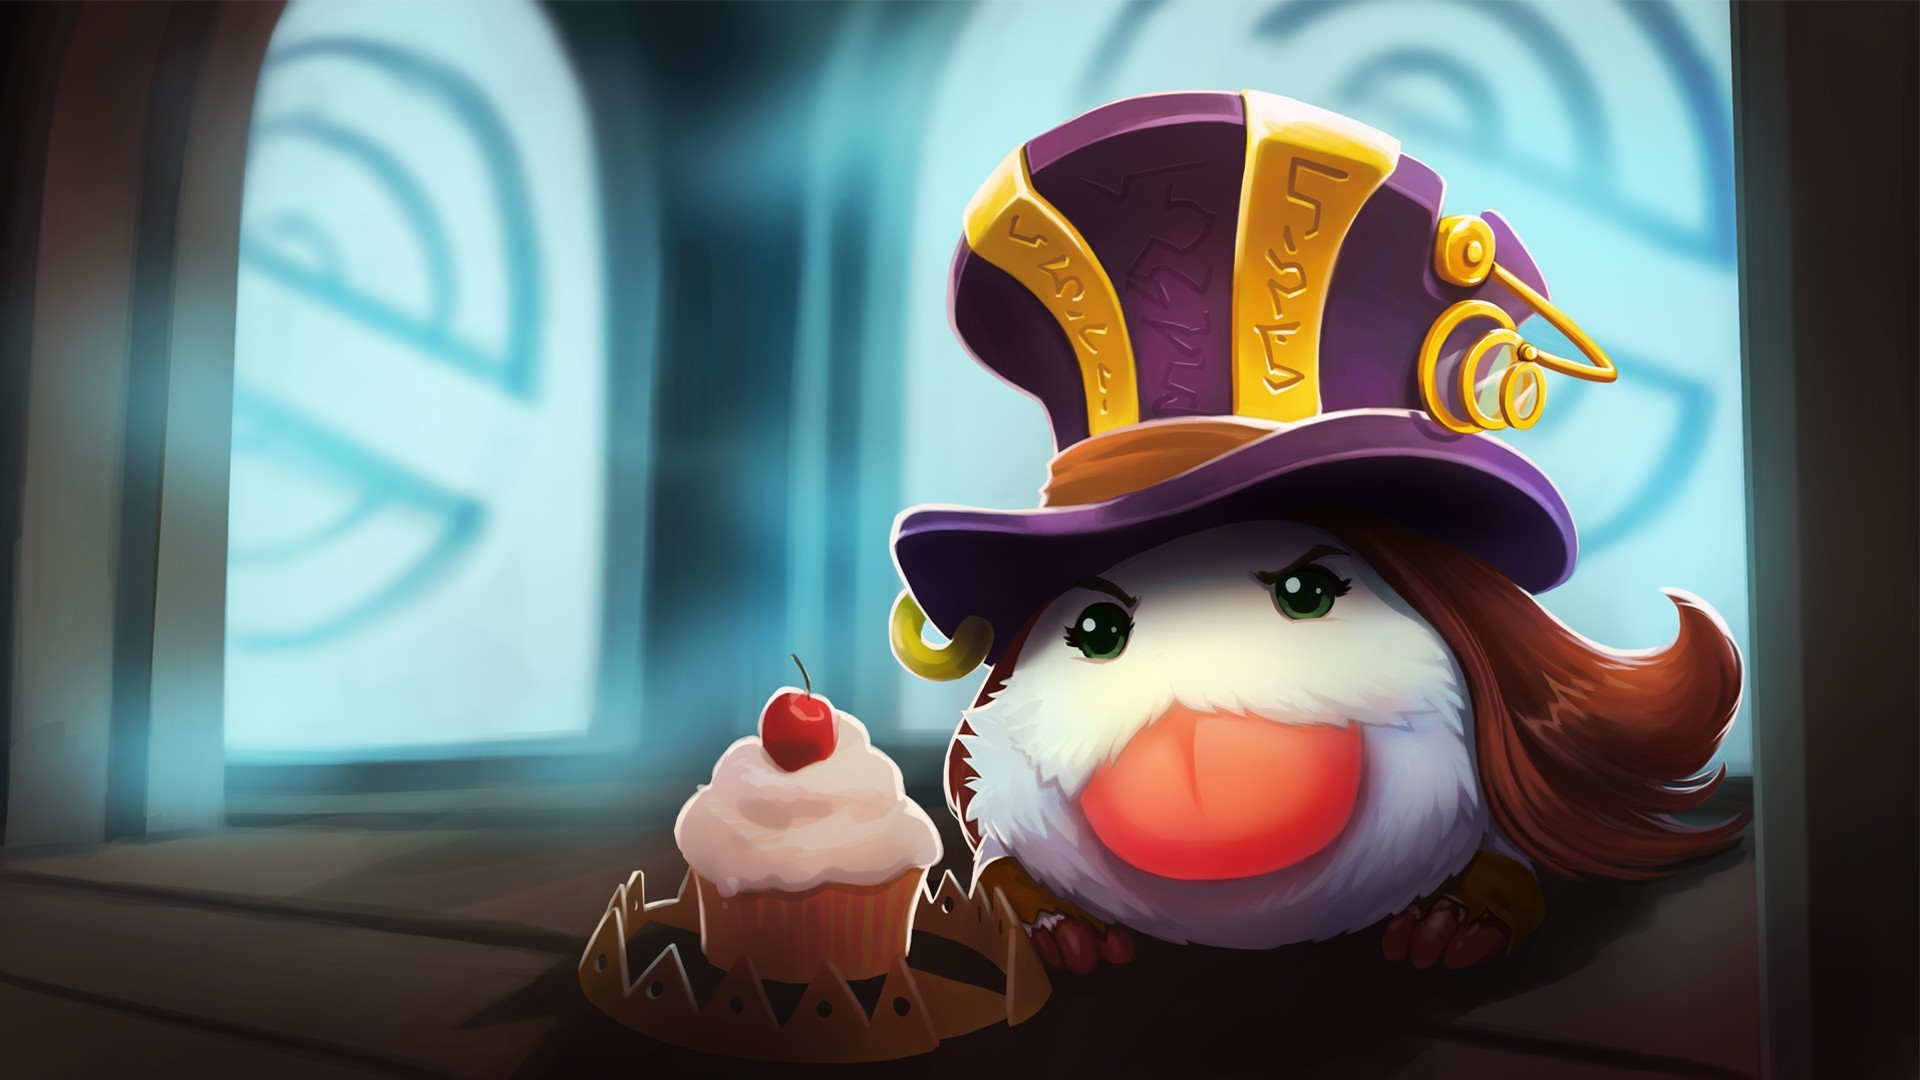 Cars Movie Characters Wallpapers League Of Legends Poro Caitlyn Wallpapers Hd Desktop